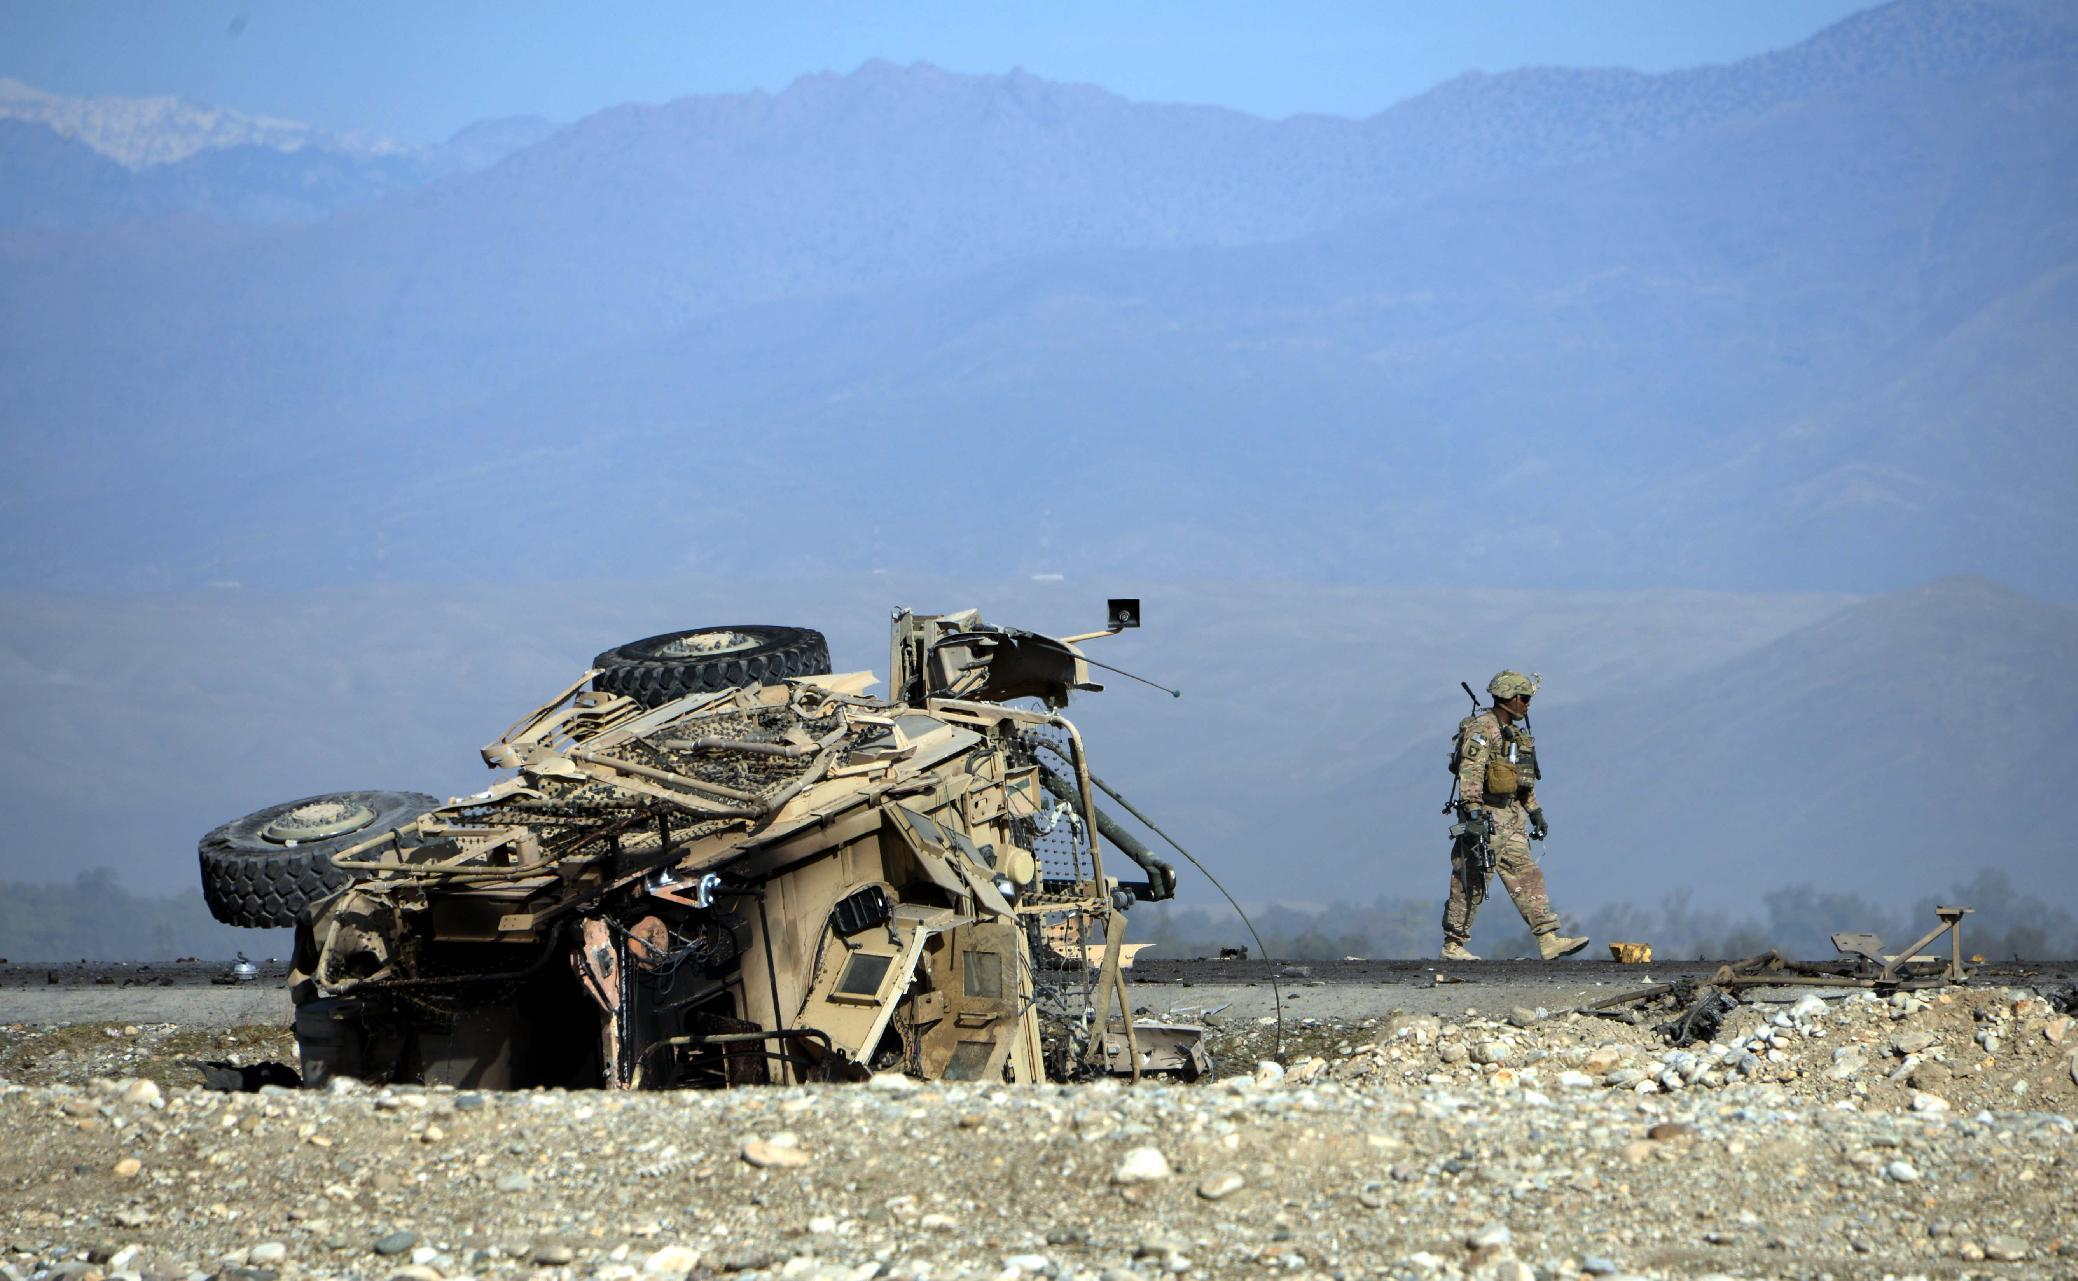 US soldier inspects the site of a suicide attack targeting foreign troops in Jalalabad on November 13, 2014 (AFP Photo/Noorullah Shirzada)